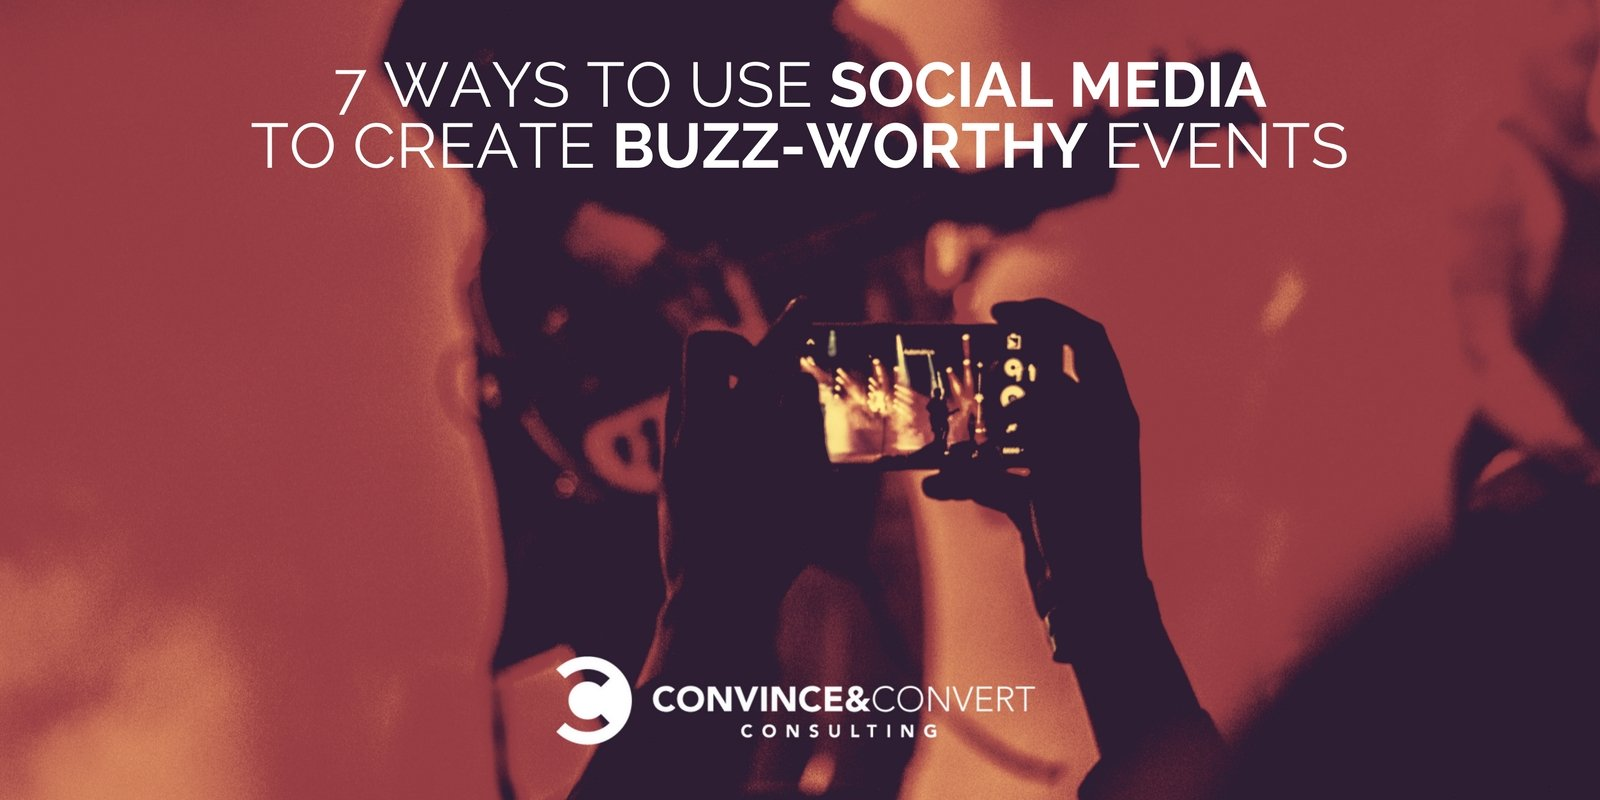 7 Ways to Use Social Media to Create Buzz-Worthy Events